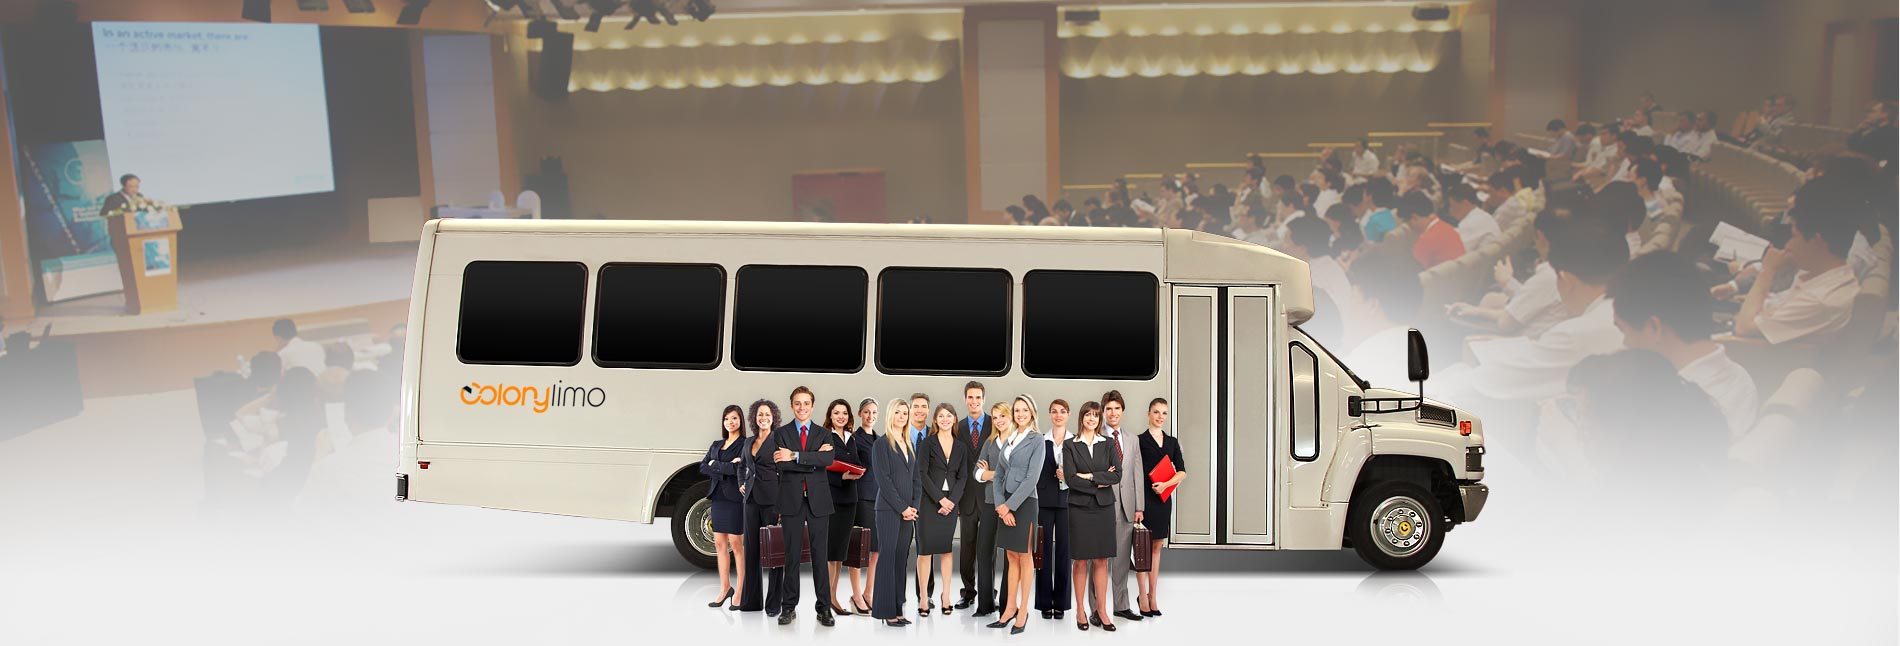 Corporate Events - Colony Limo Service Houston